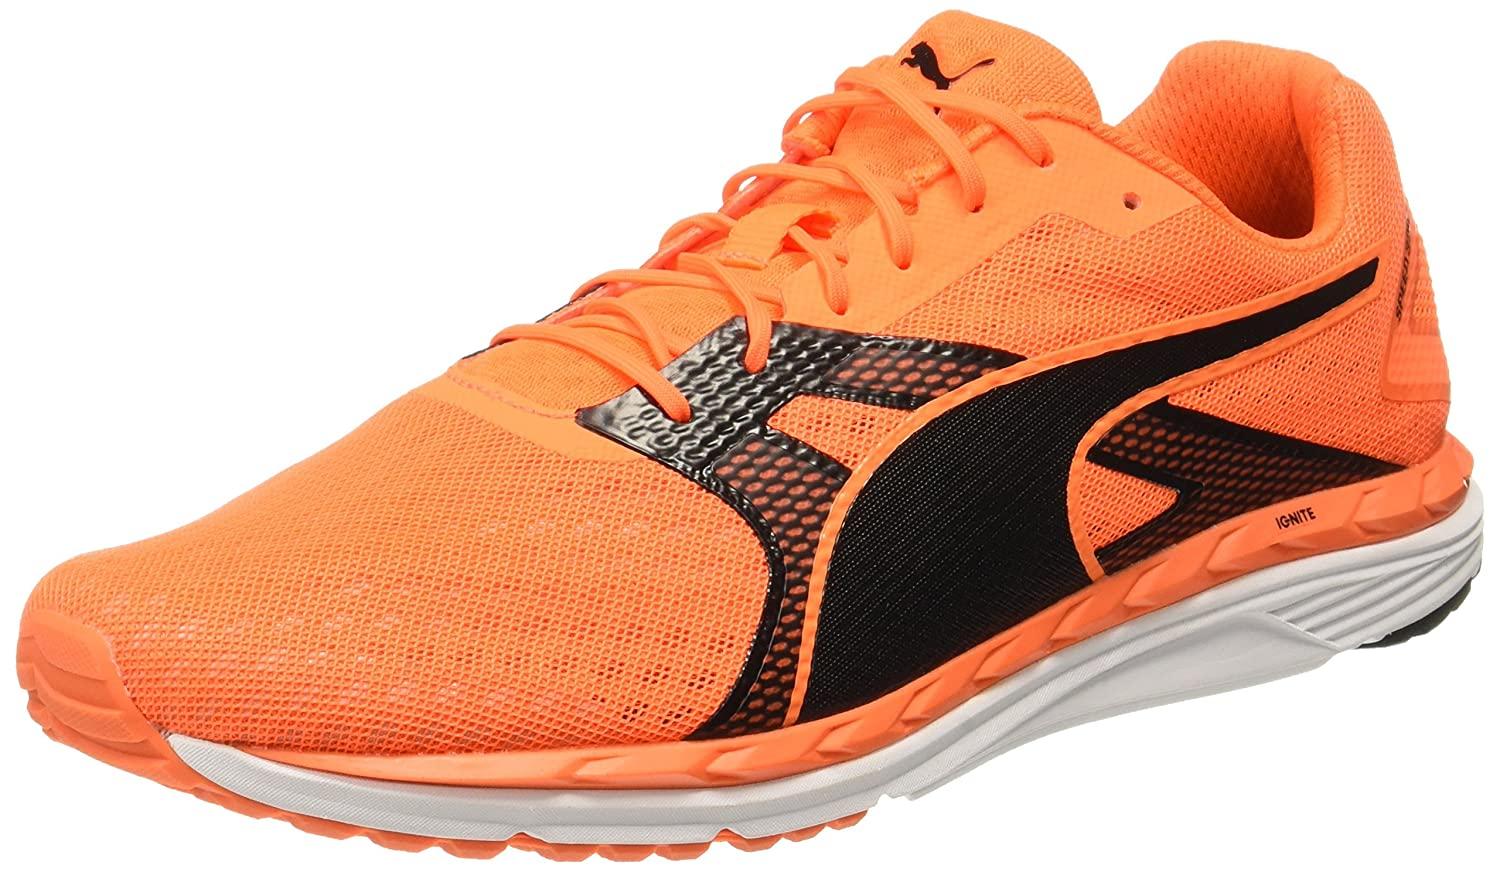 5abaebb49970 Puma Men s Speed 300 Ignite 2 Running Shoes  Buy Online at Low Prices in  India - Amazon.in